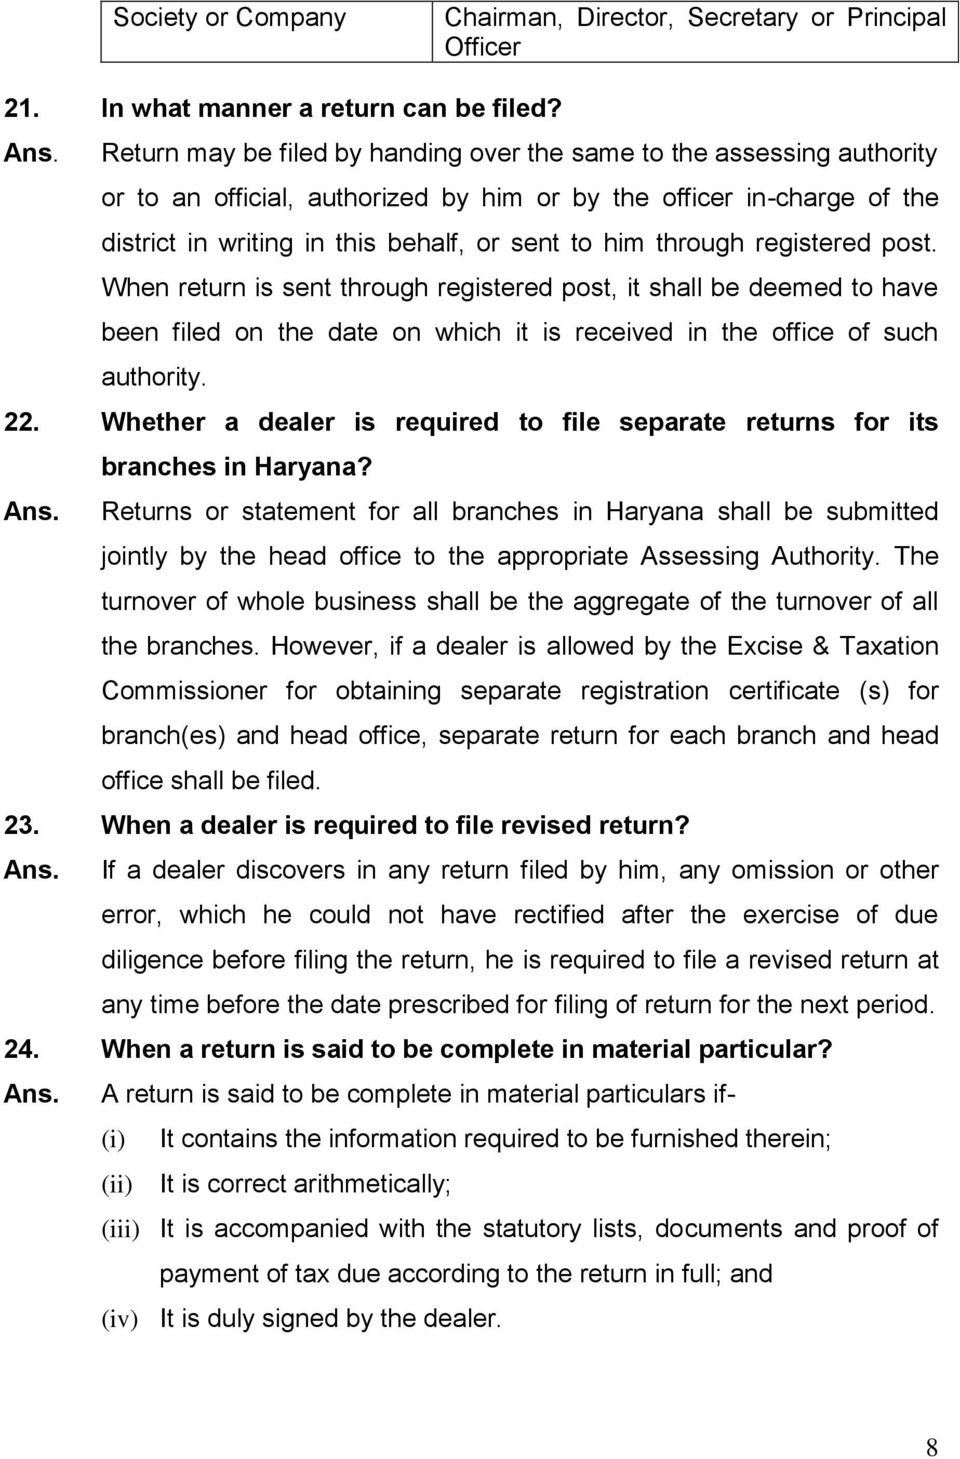 through registered post. When return is sent through registered post, it shall be deemed to have been filed on the date on which it is received in the office of such authority. 22.